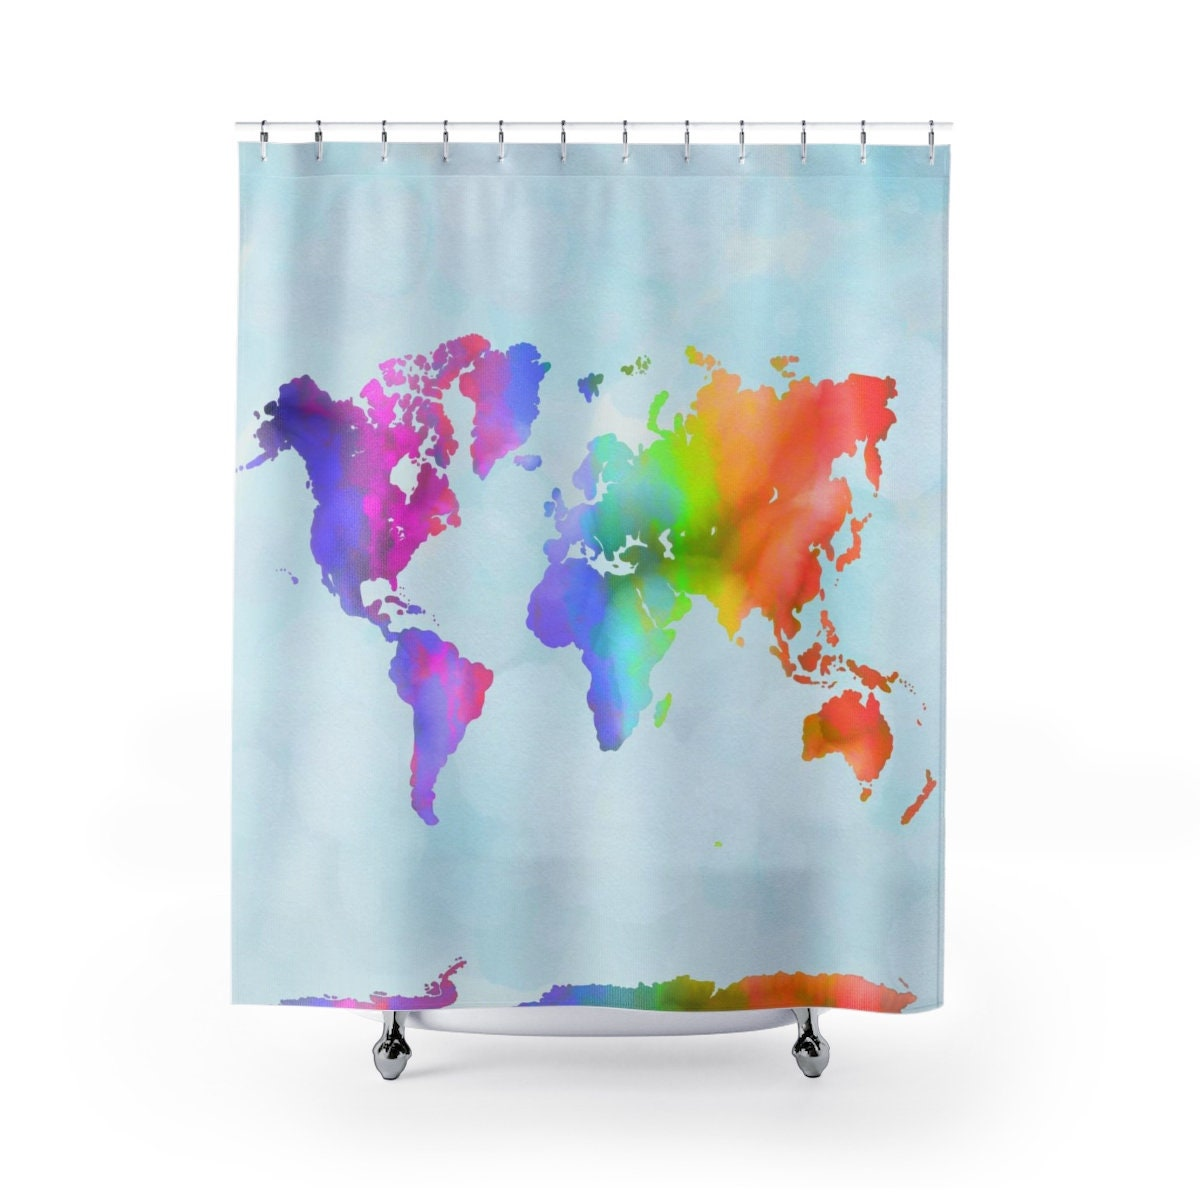 World Map Shower Curtain From Print Watercolor Painting Pastel Pink Blue Sea Green Aqua Teal Turquoise Great For Kids Bath